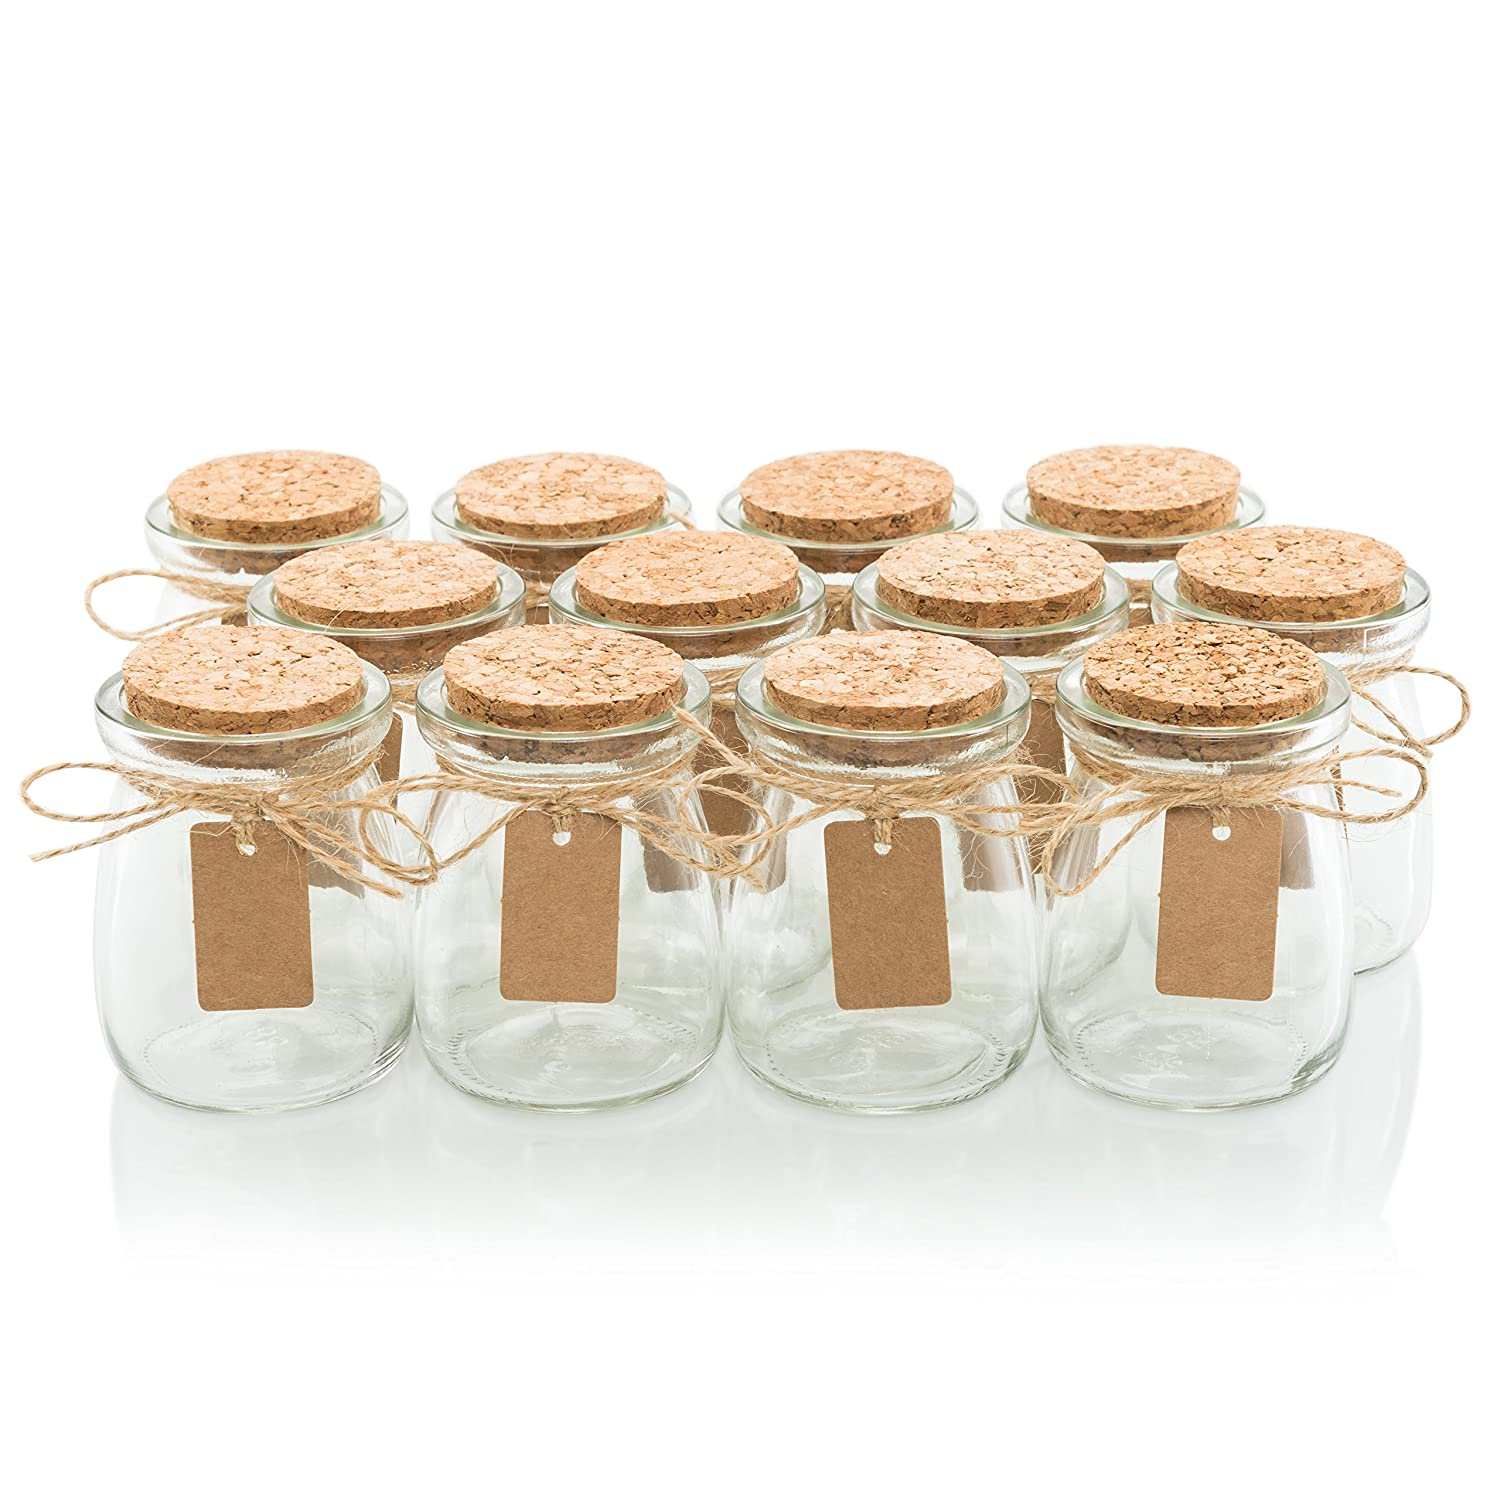 Amazon.com: Glass Favor Jars With Cork Lids - Mason Jar Wedding ...